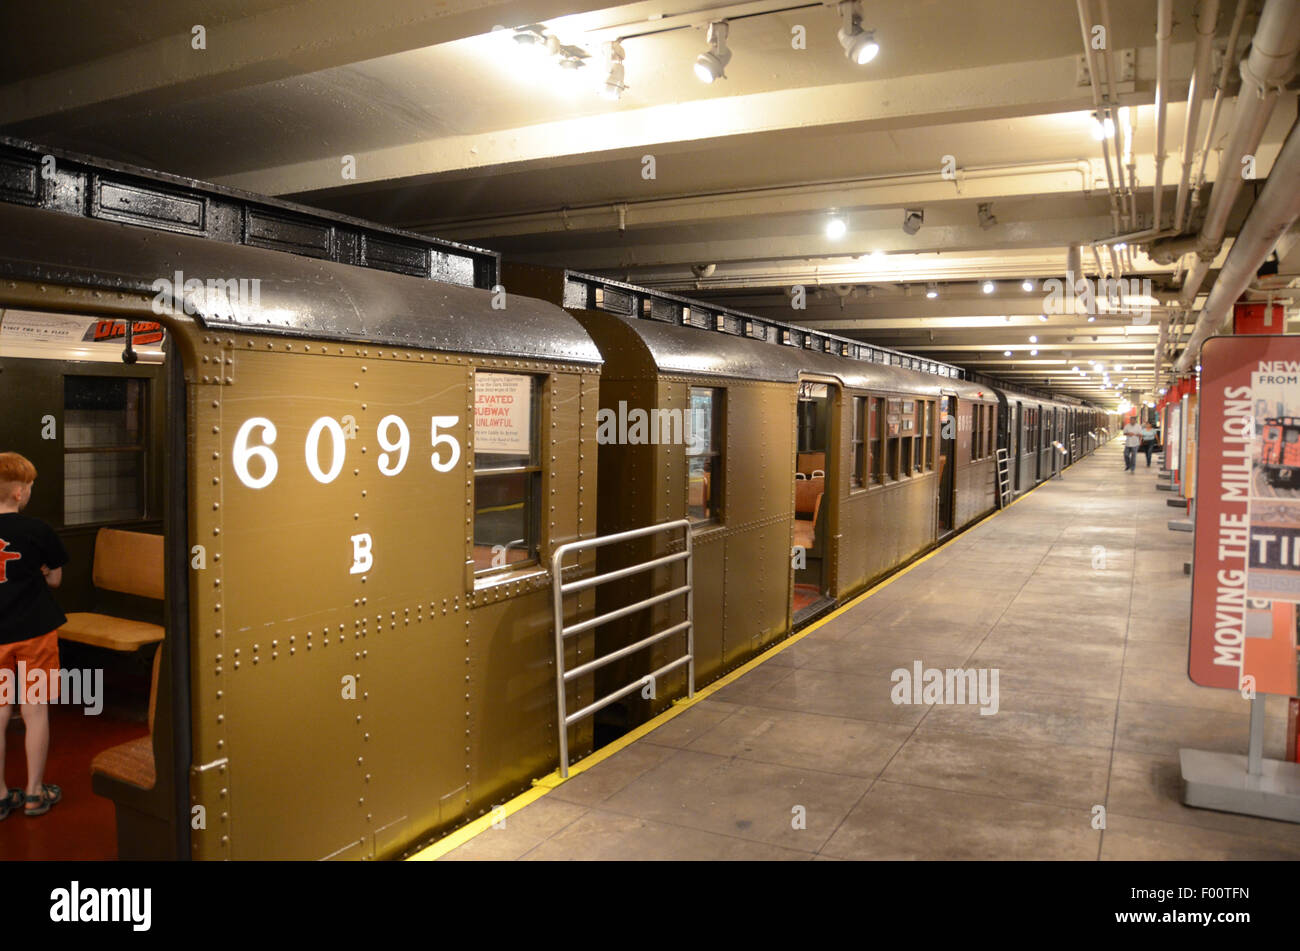 New York Transit Museum 1927 carriage subway vintage subway signs adverts rattan benches green livery exterior - Stock Image